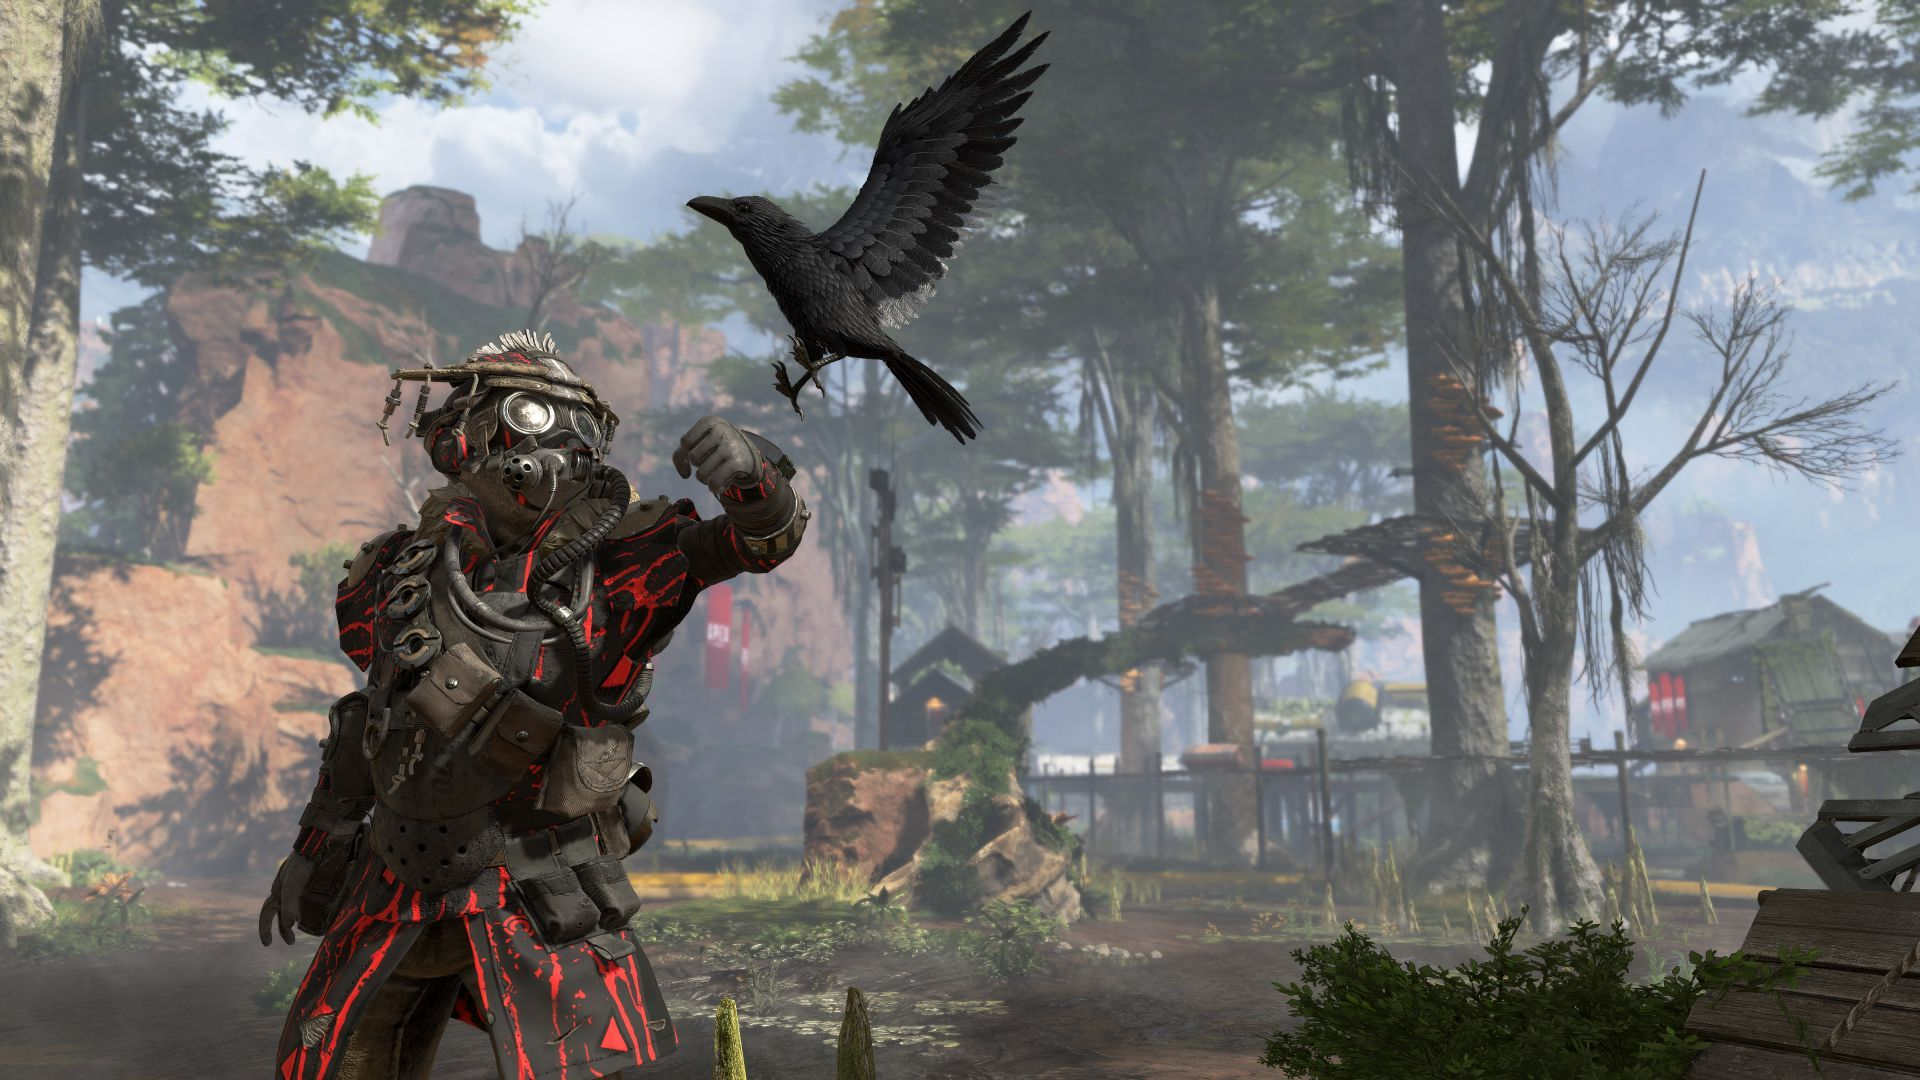 Apex Legends Bloodhound HD Wallpaper 67032 1920x1080px 1920x1080